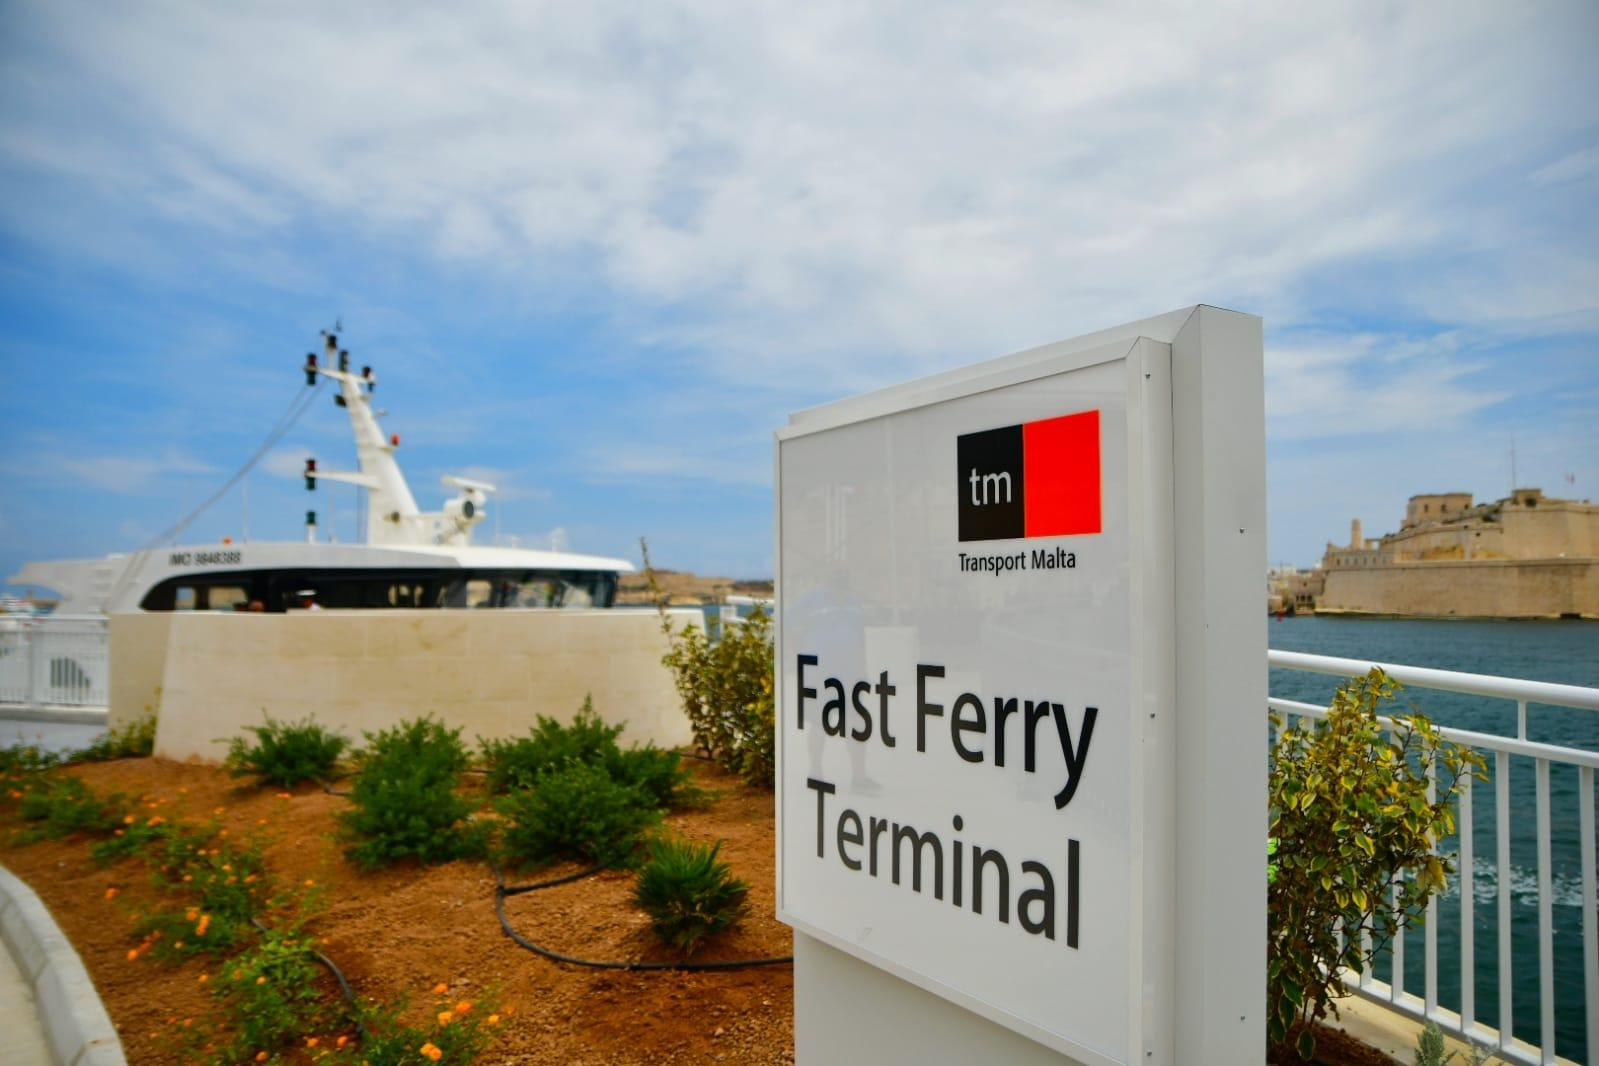 Ceremony of the Fast Ferry terminal on Tuesday Photo: Jonathan Borg